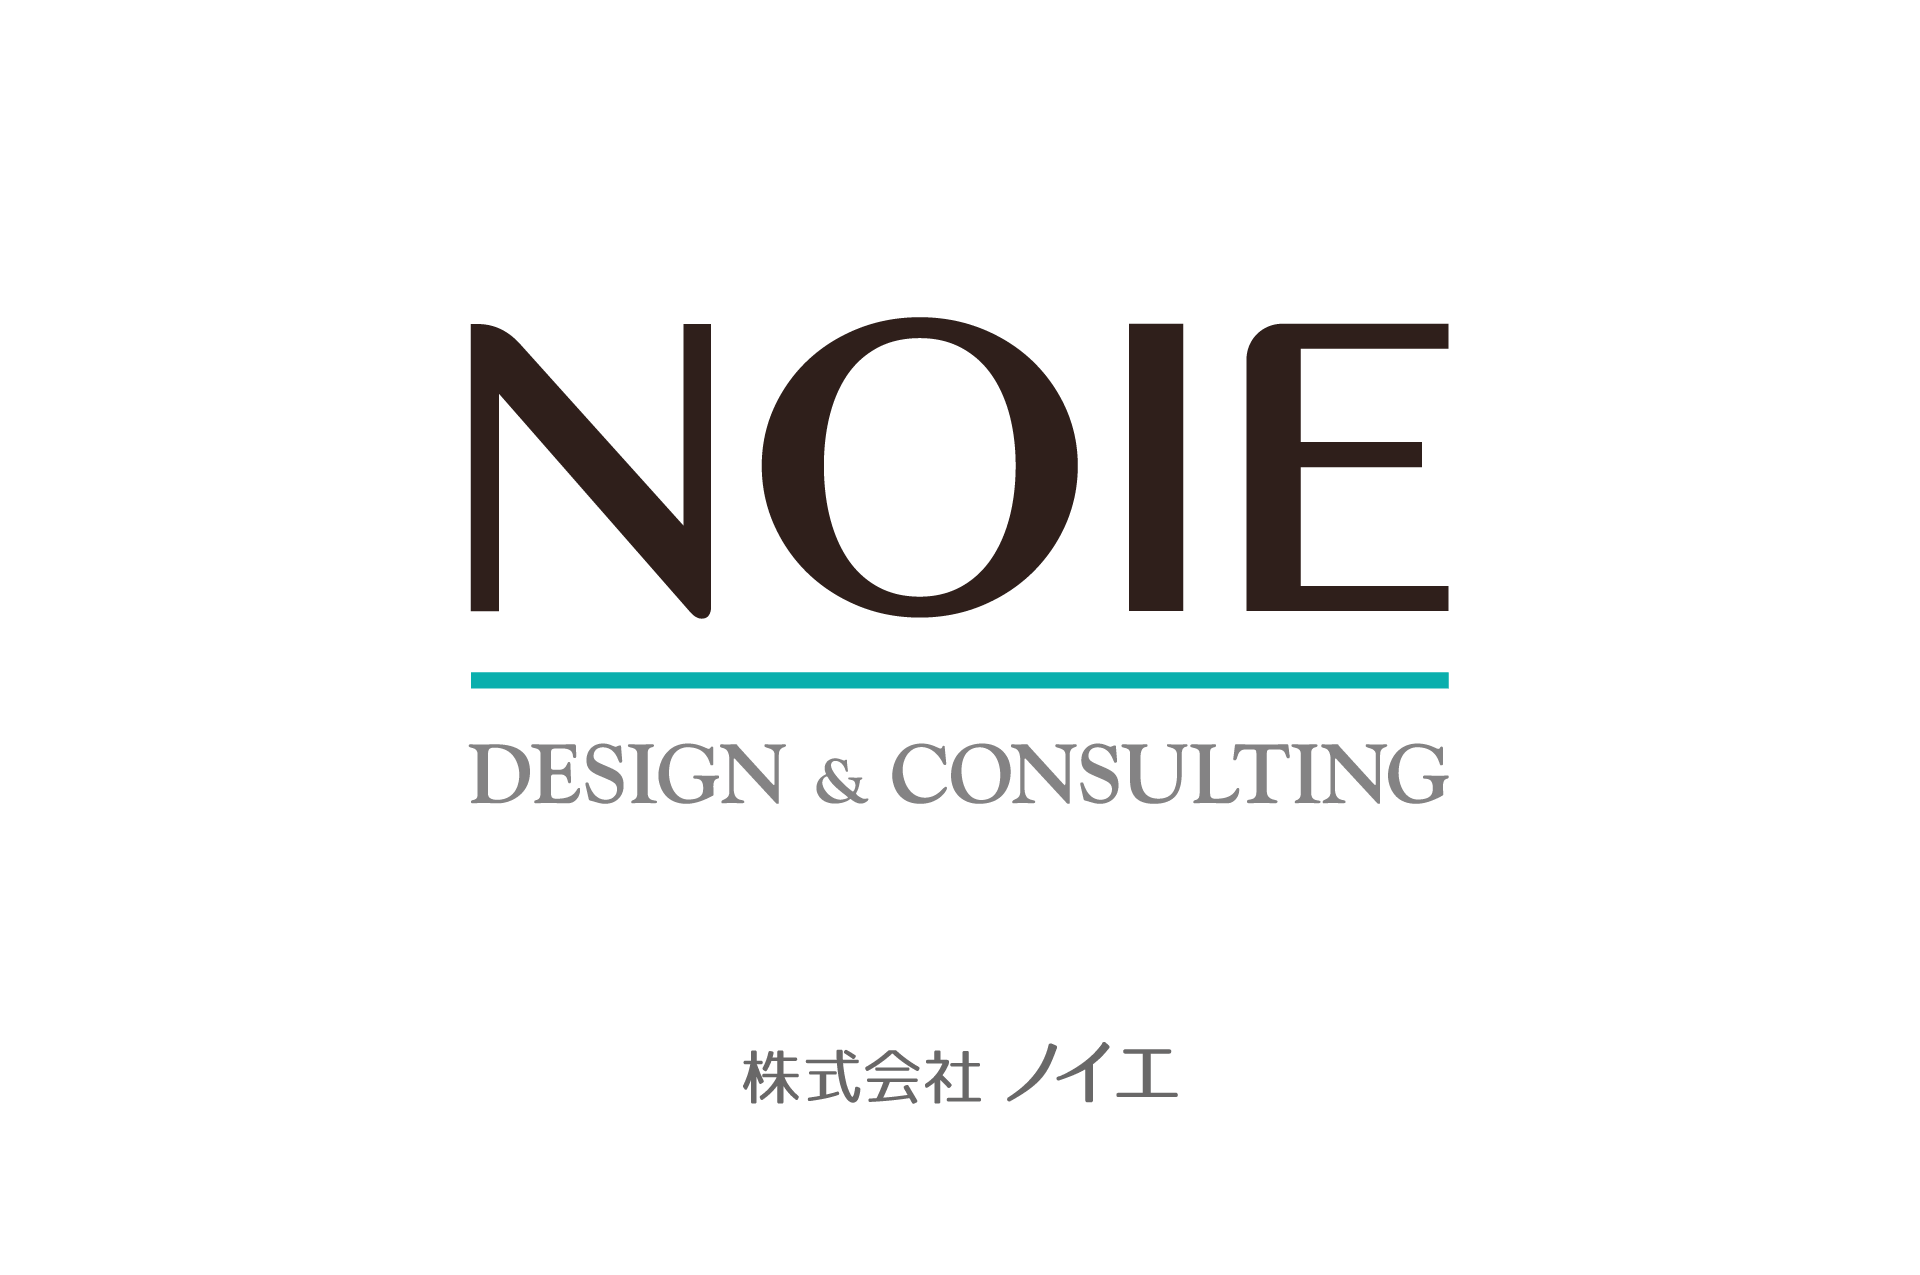 NOIE Design & Consulting 株式会社ノイエ